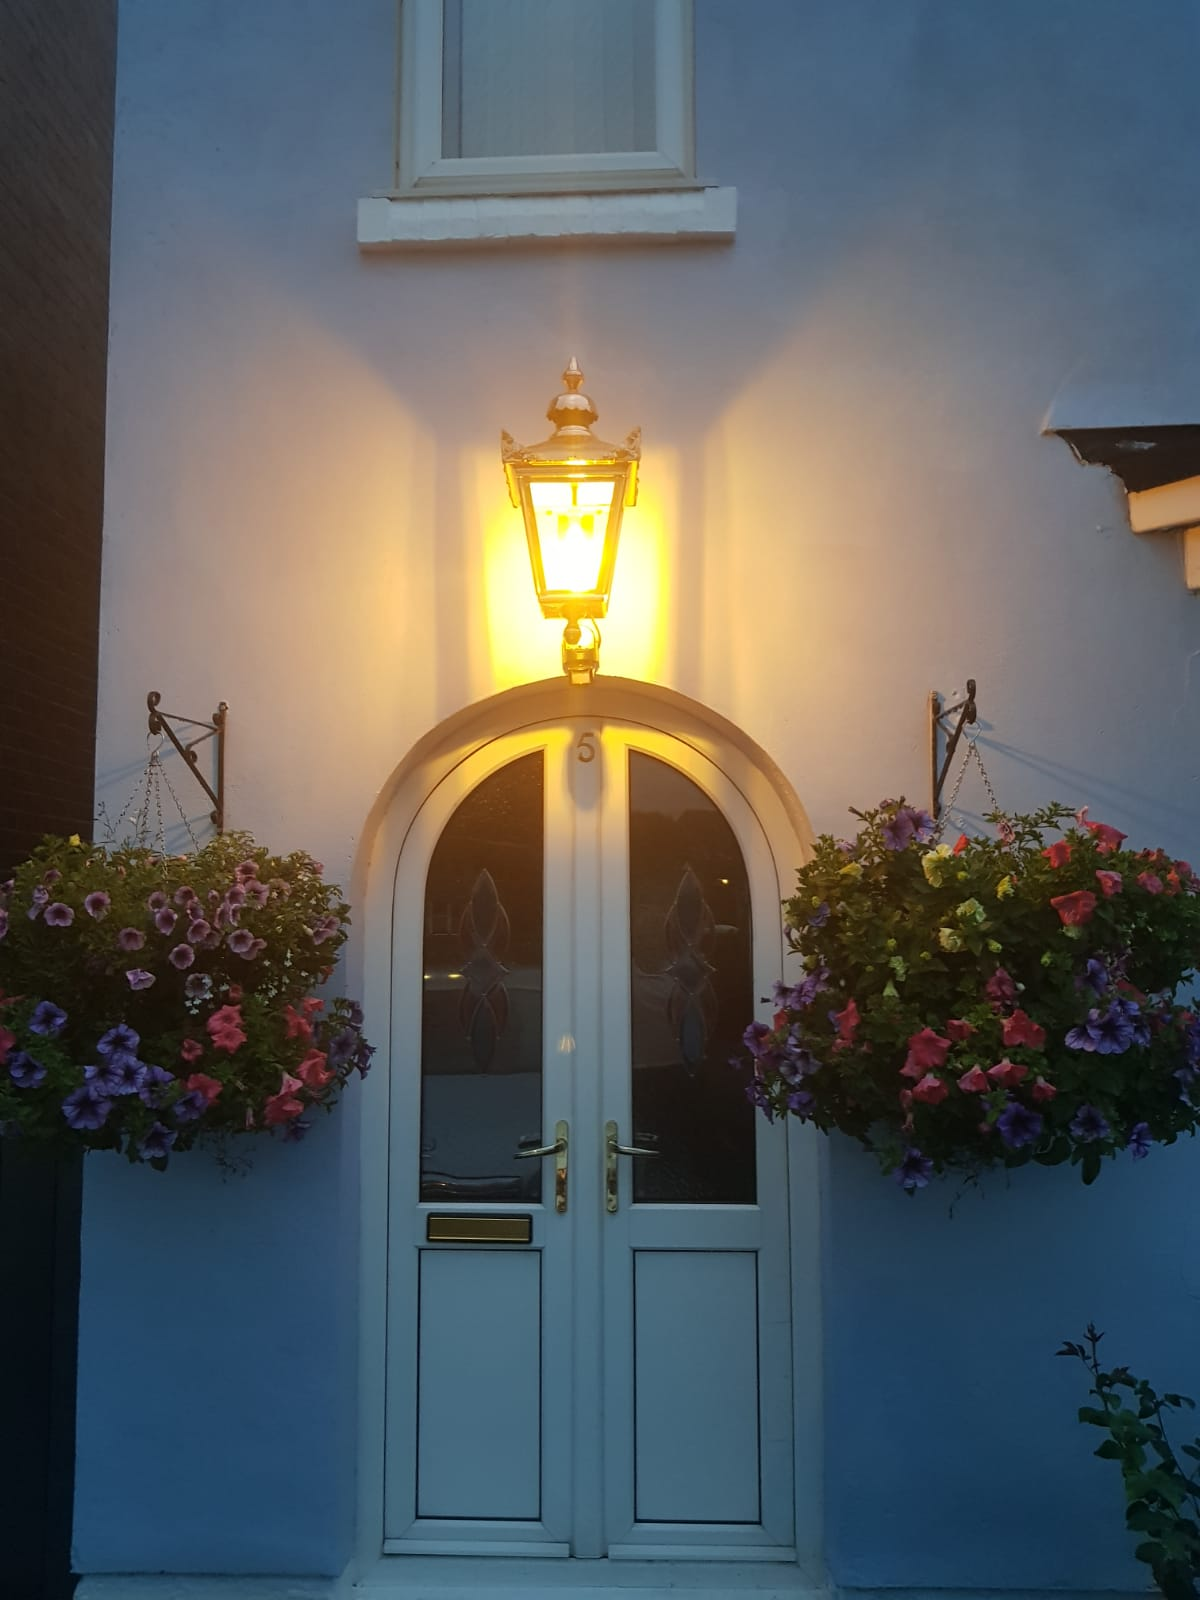 Copper garden lanterns fitted at night in a happy customers home. Traditional Victorian style lanterns at night